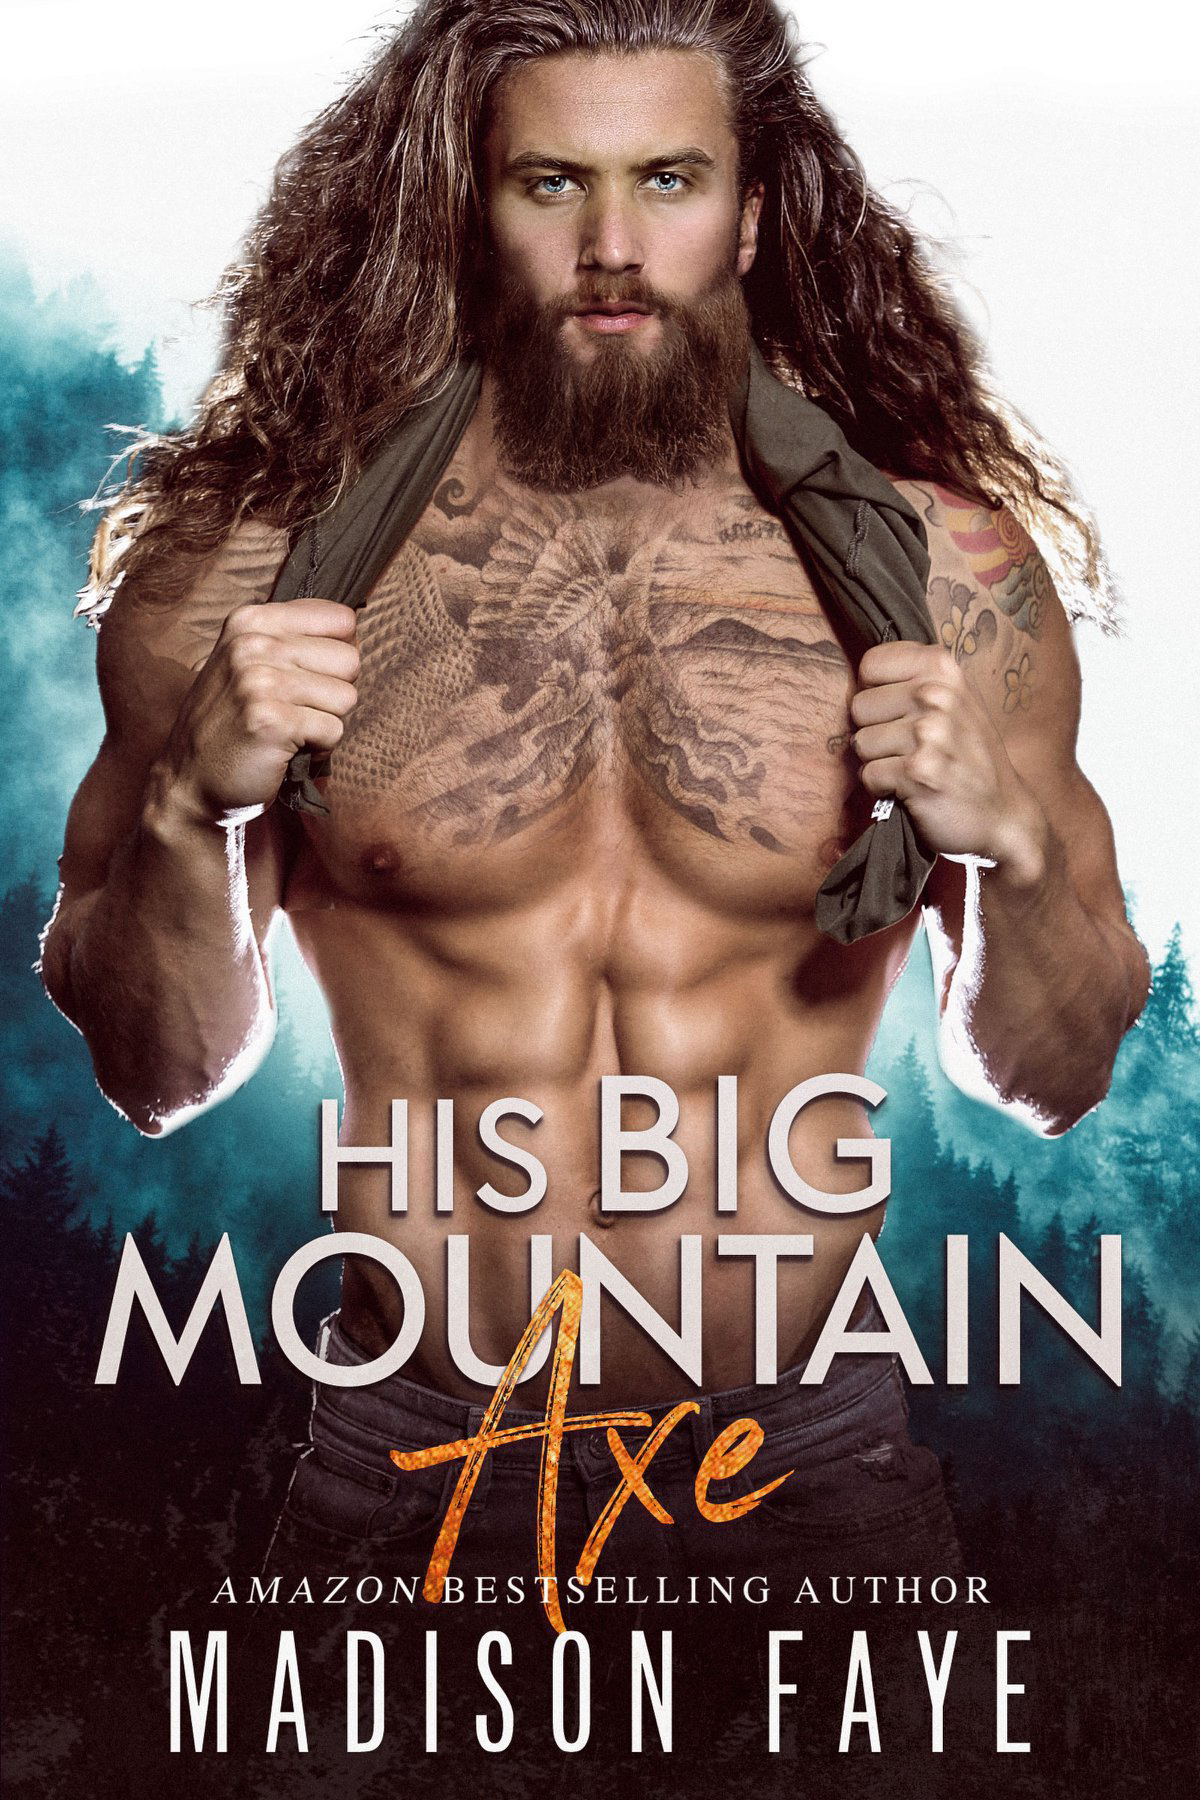 HIS BIG MOUNTAIN AXE